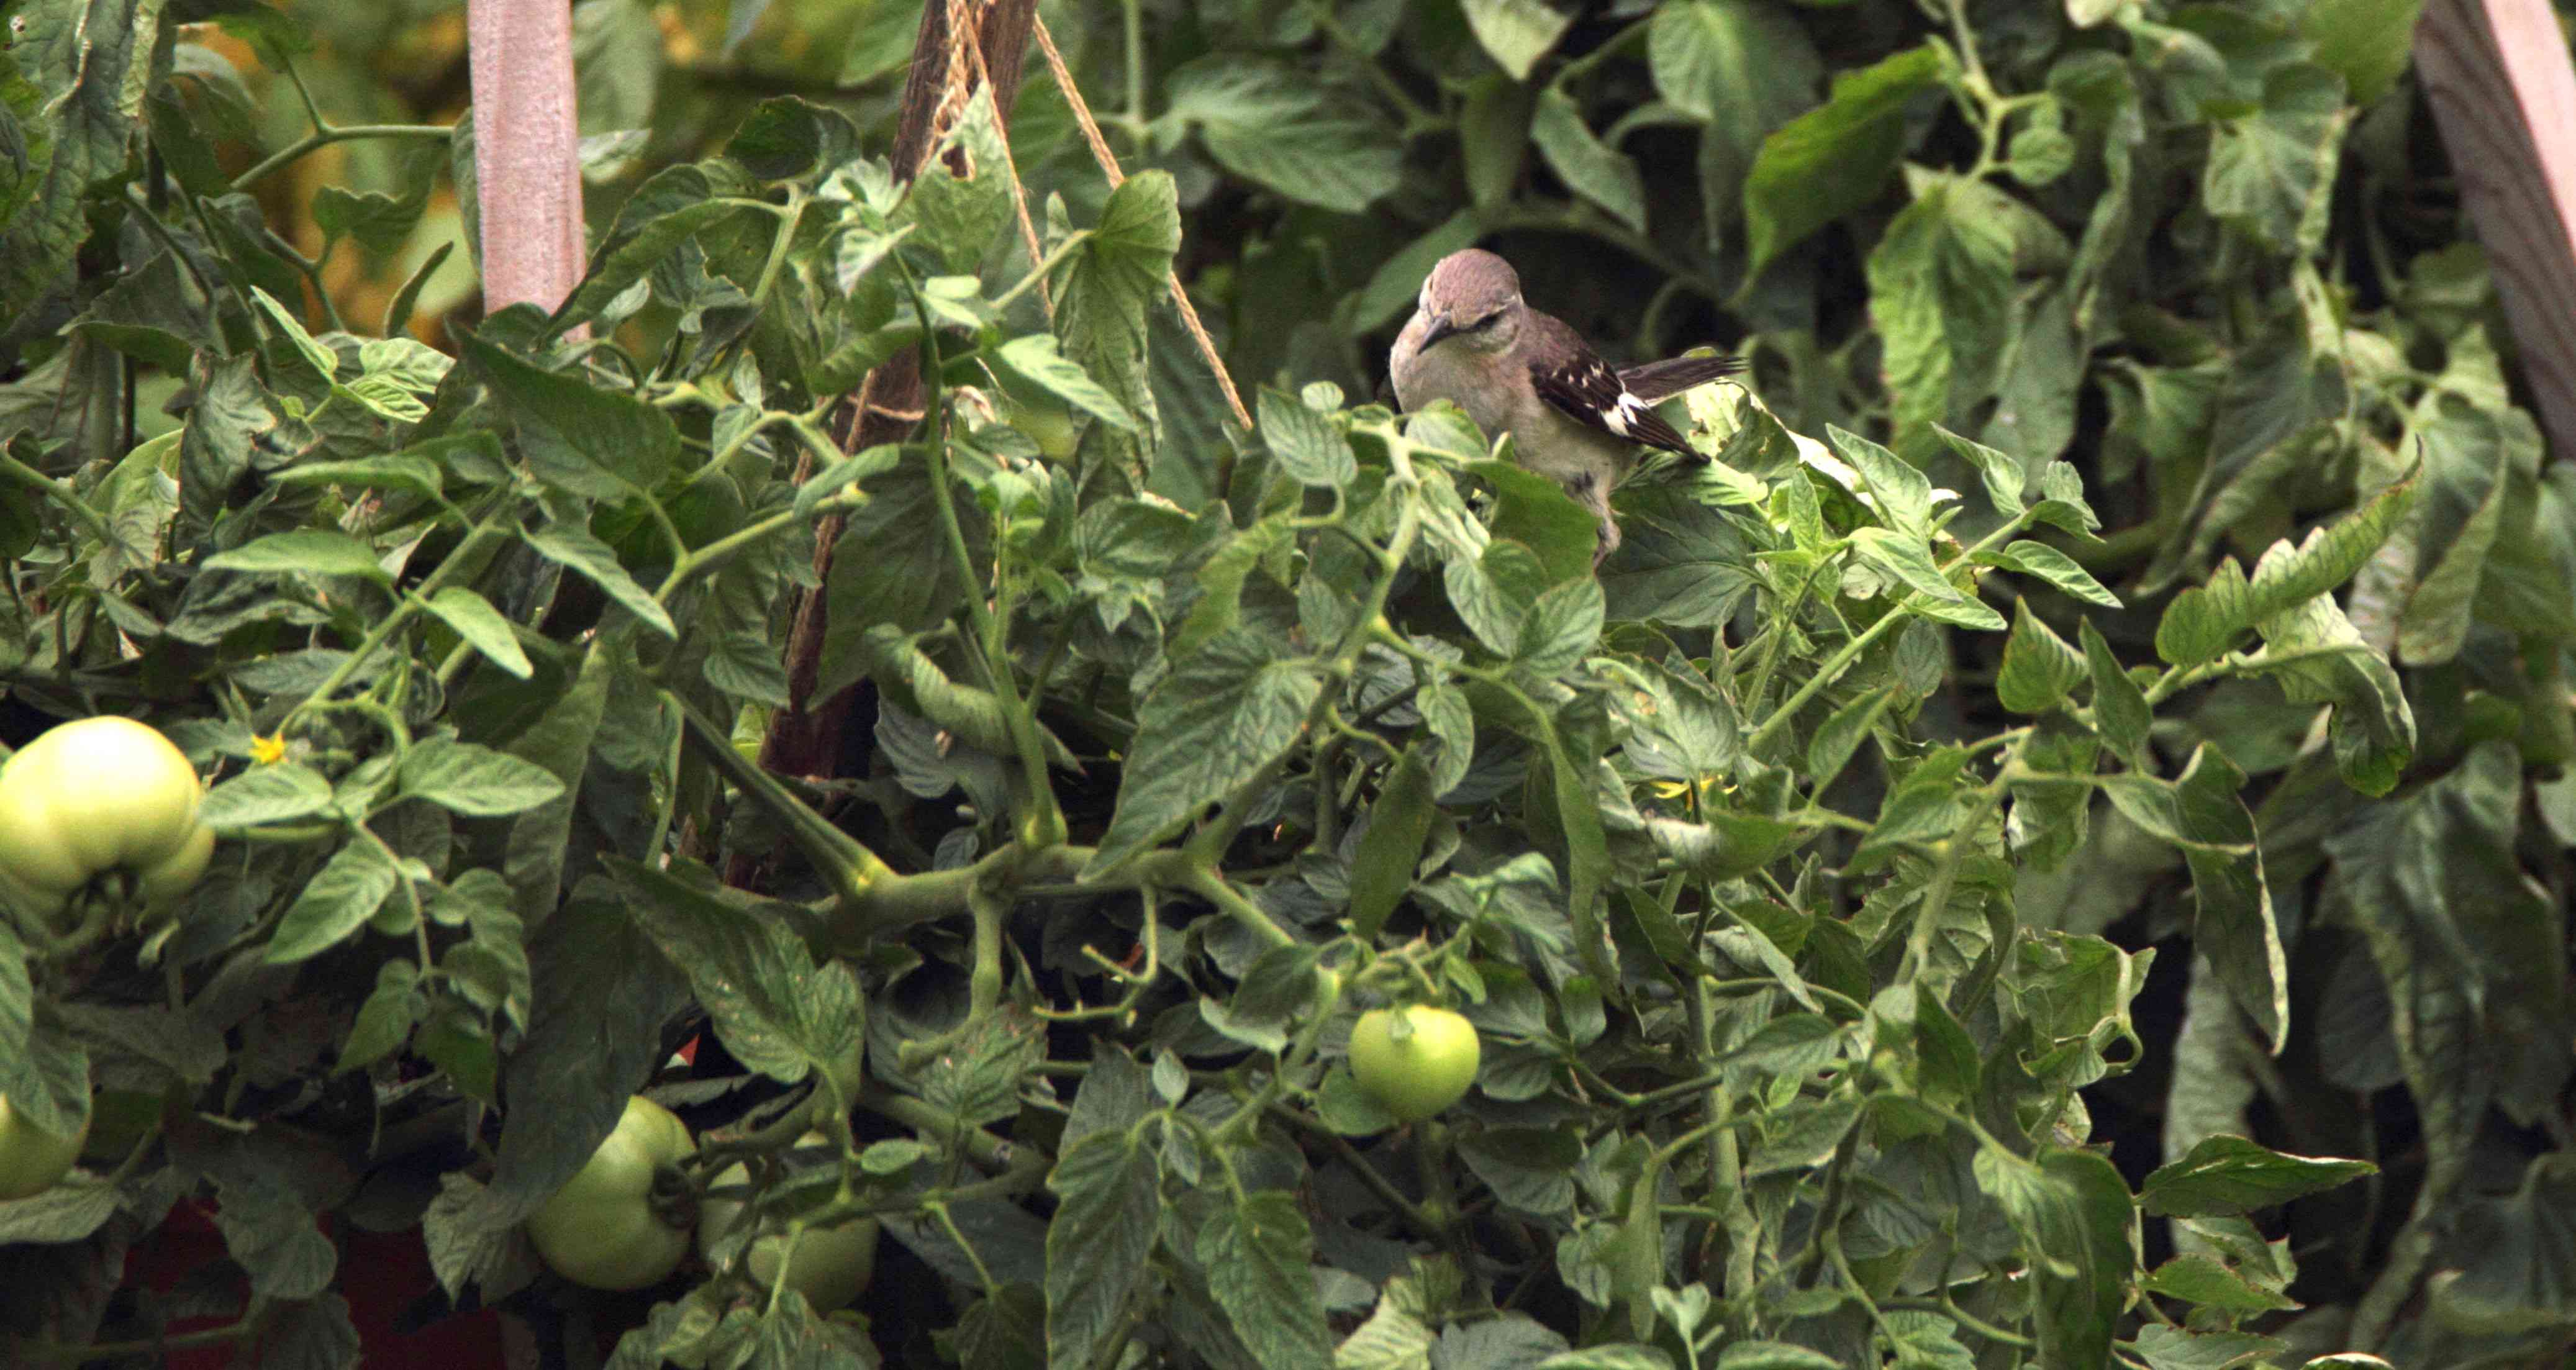 northern mockingbird in a garden on tomatoes